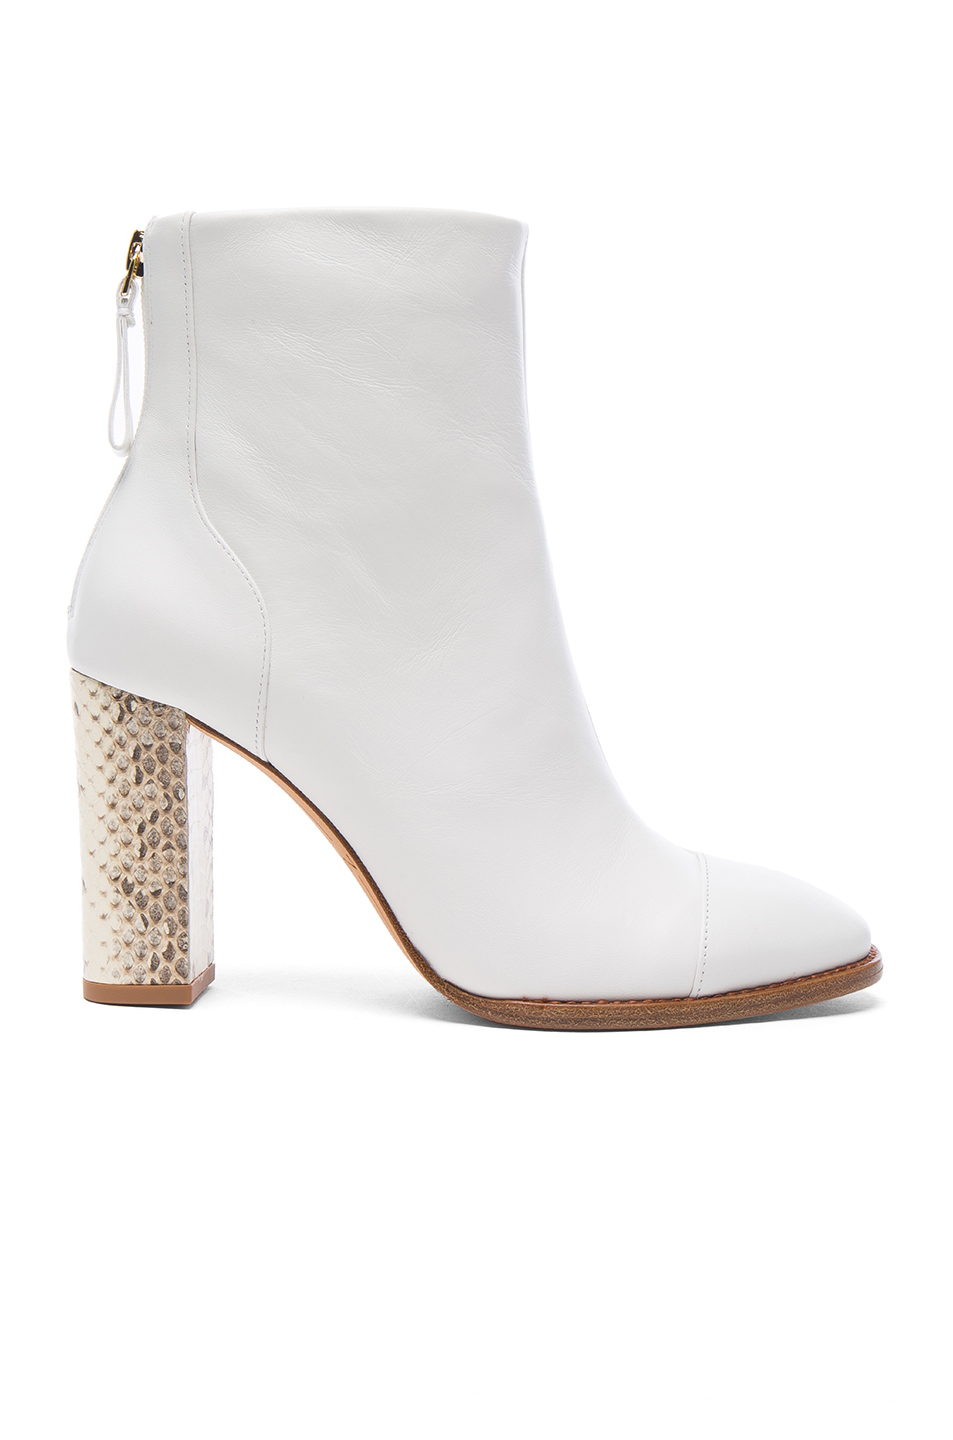 Alexandre Birman Leather Bibiana Watersnake Booties In White In White & Natural